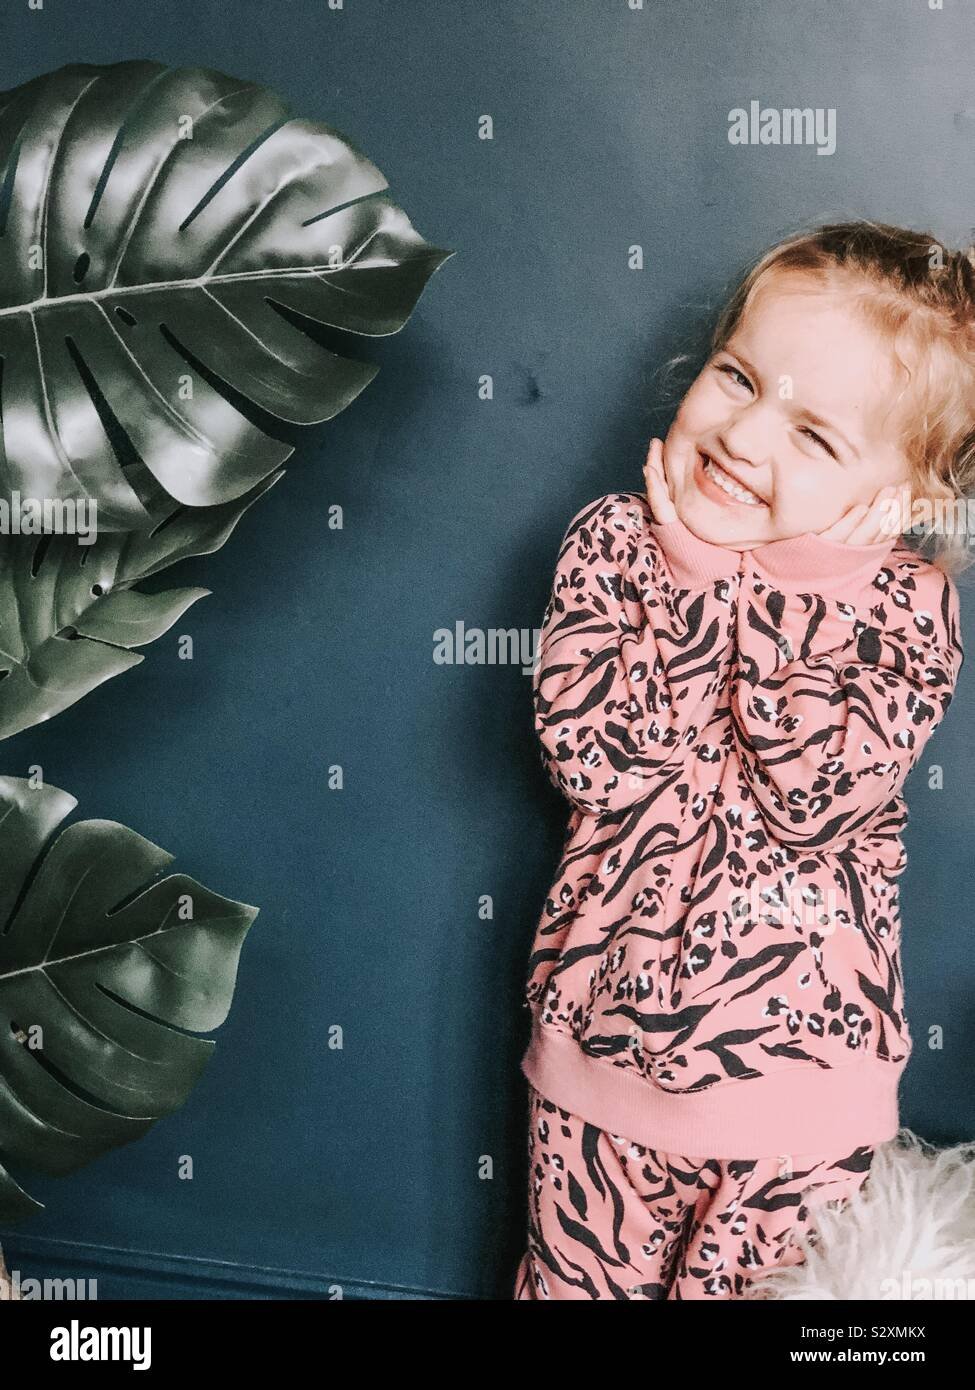 Three year old girl wearing pink animal print clothing Stock Photo